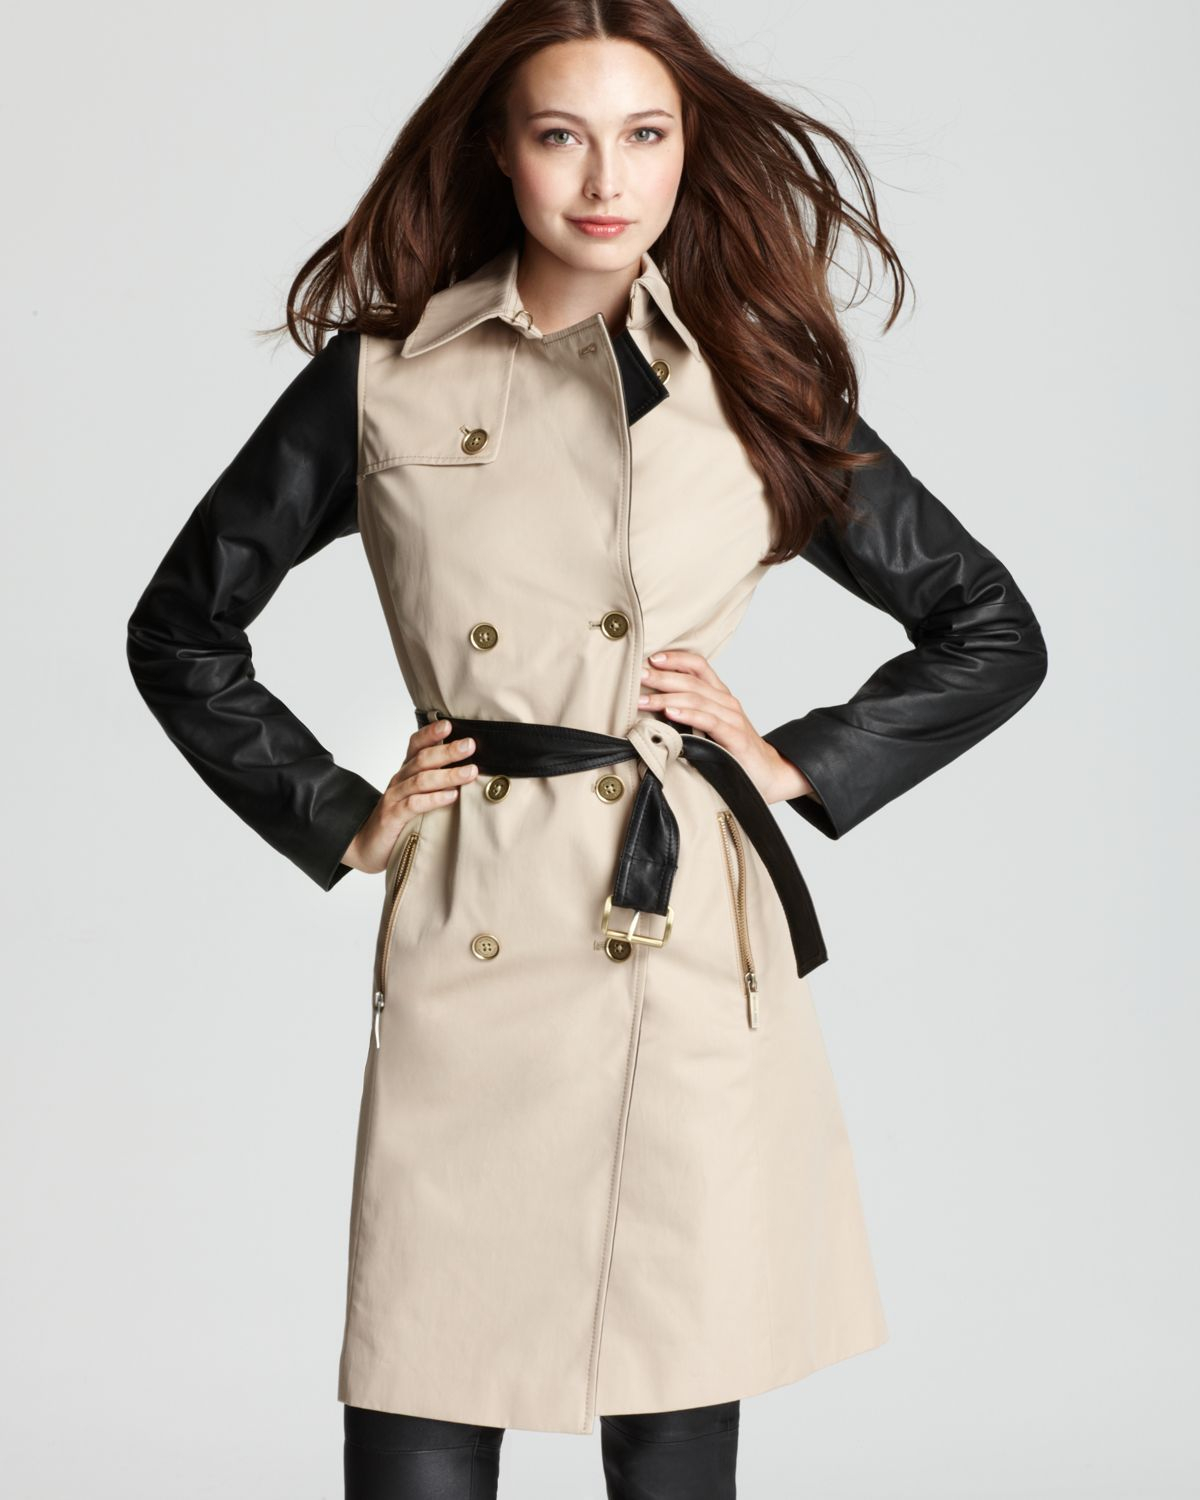 Michael Kors Leather Sleeve Trench Coat In Black Lyst